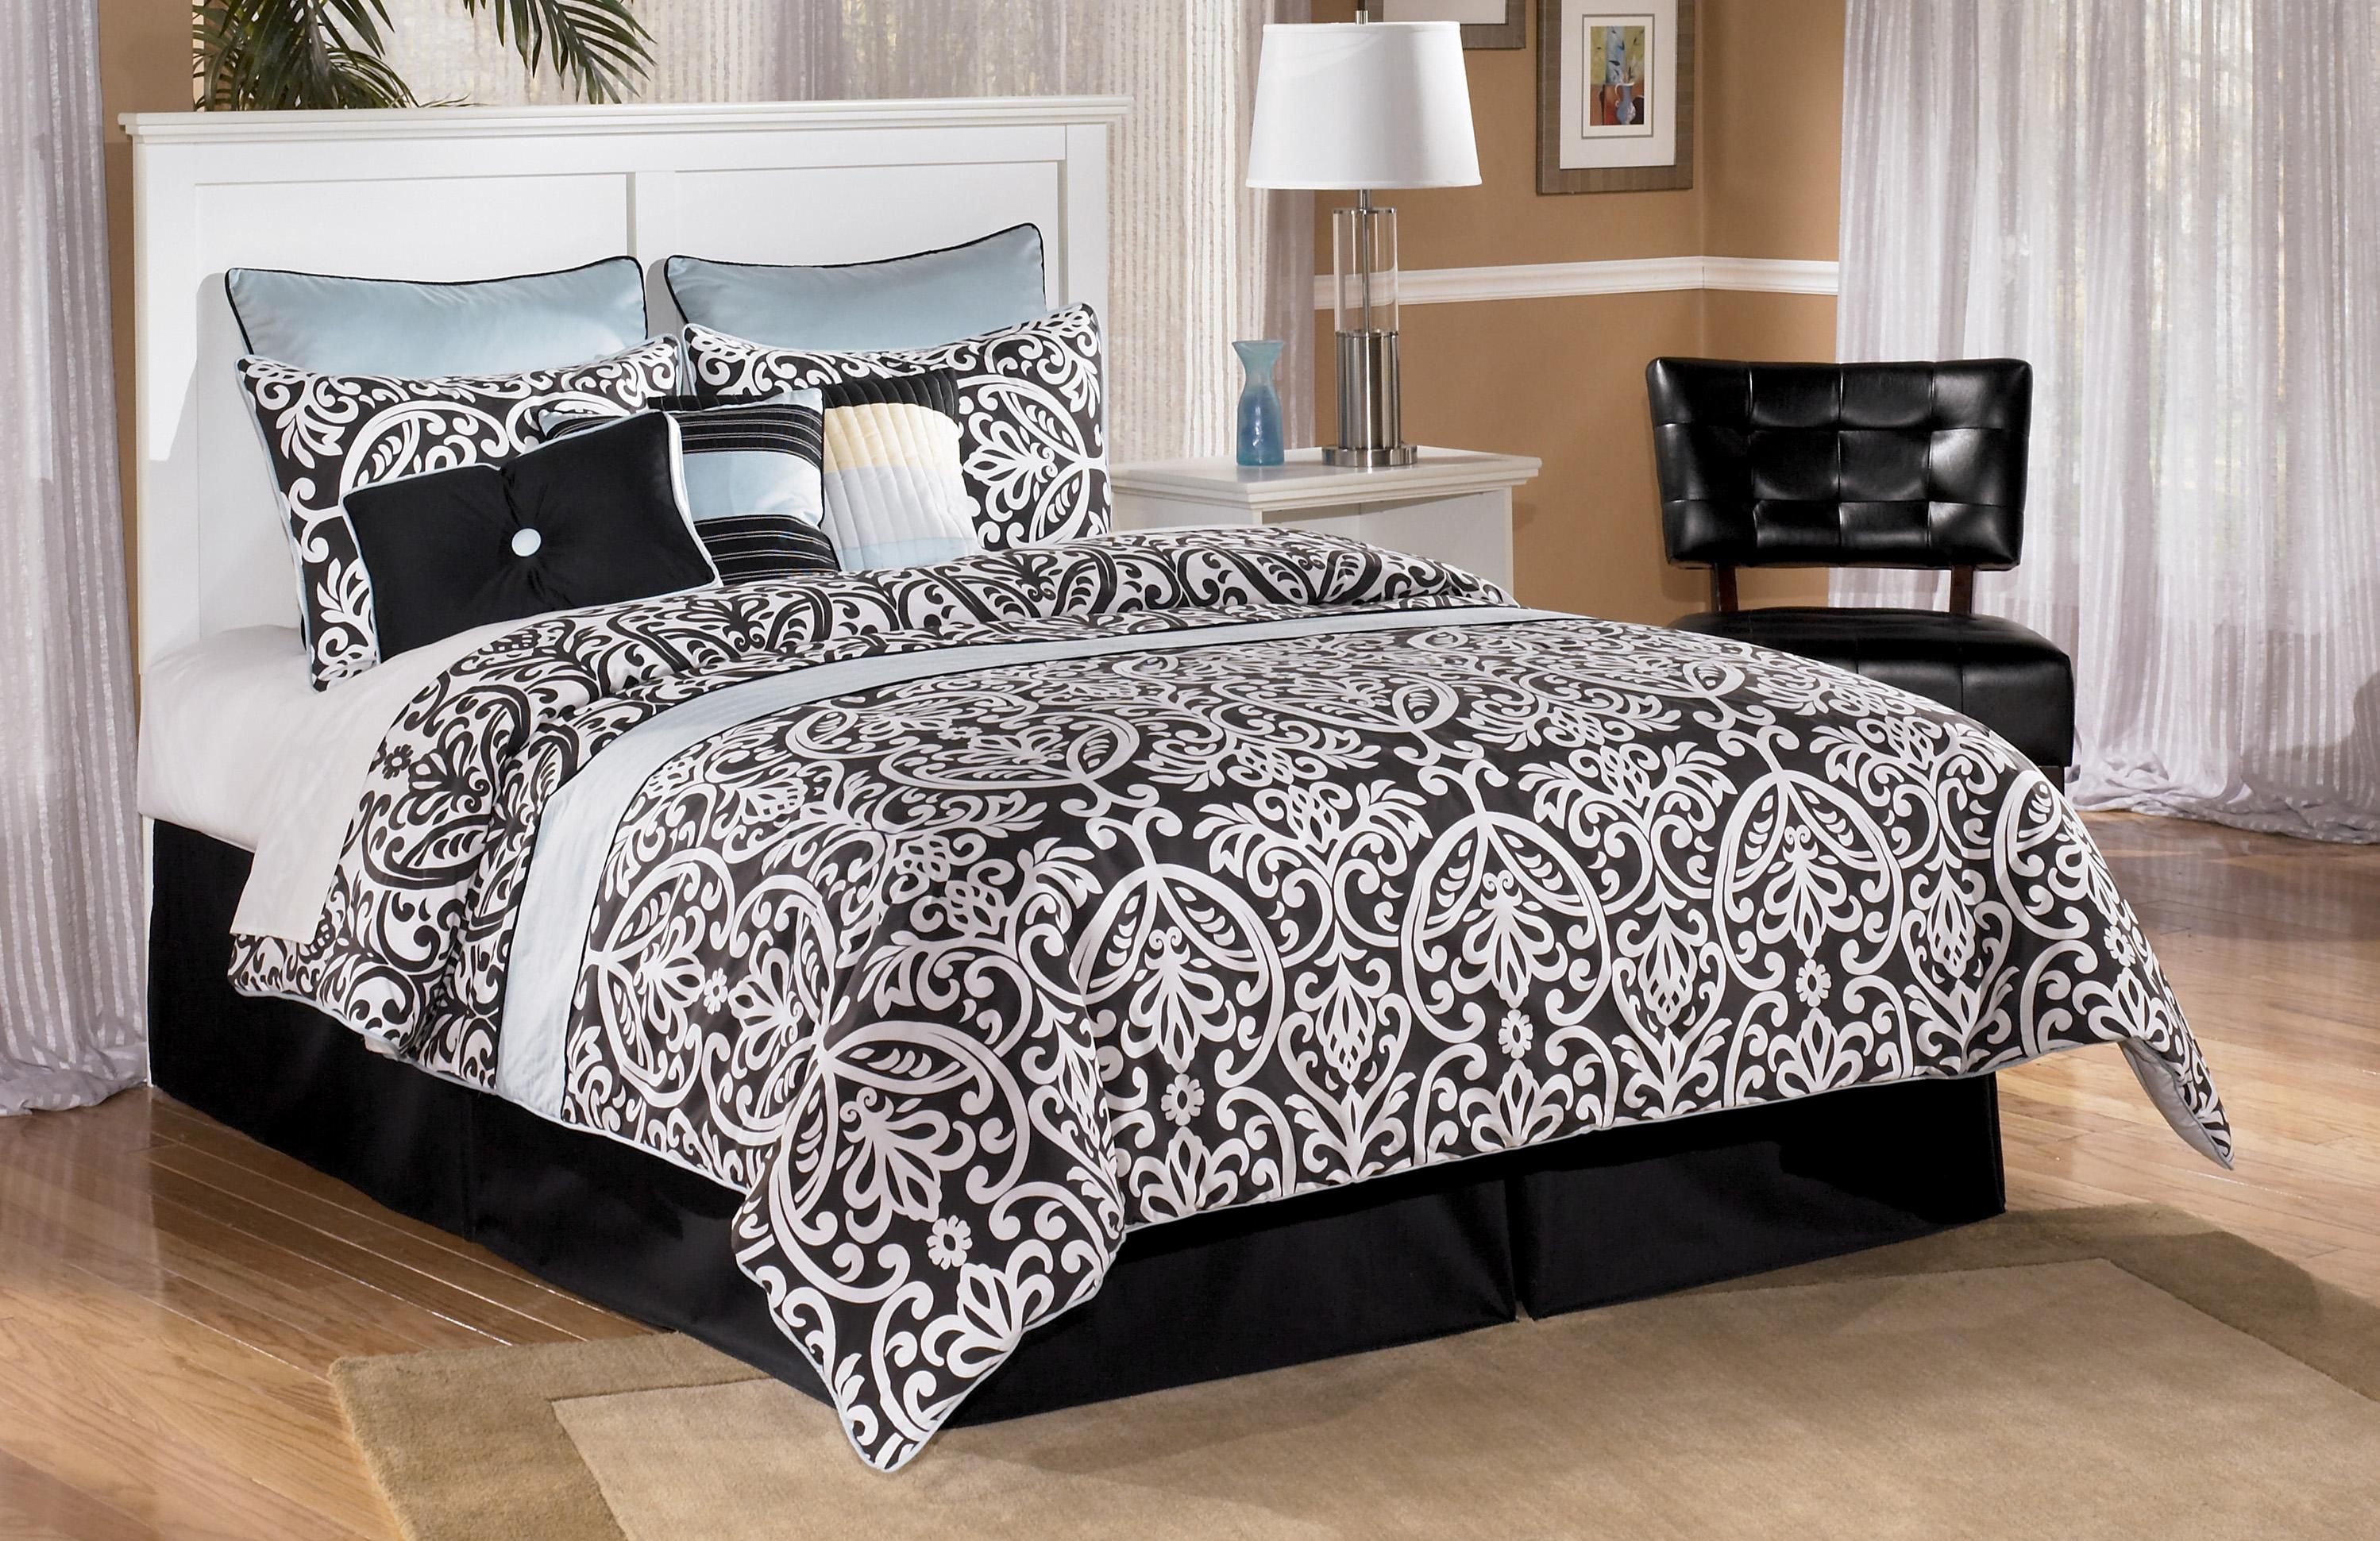 Signature Design by Ashley Bostwick Shoals Full Panel Headboard - Item Number: B139-87